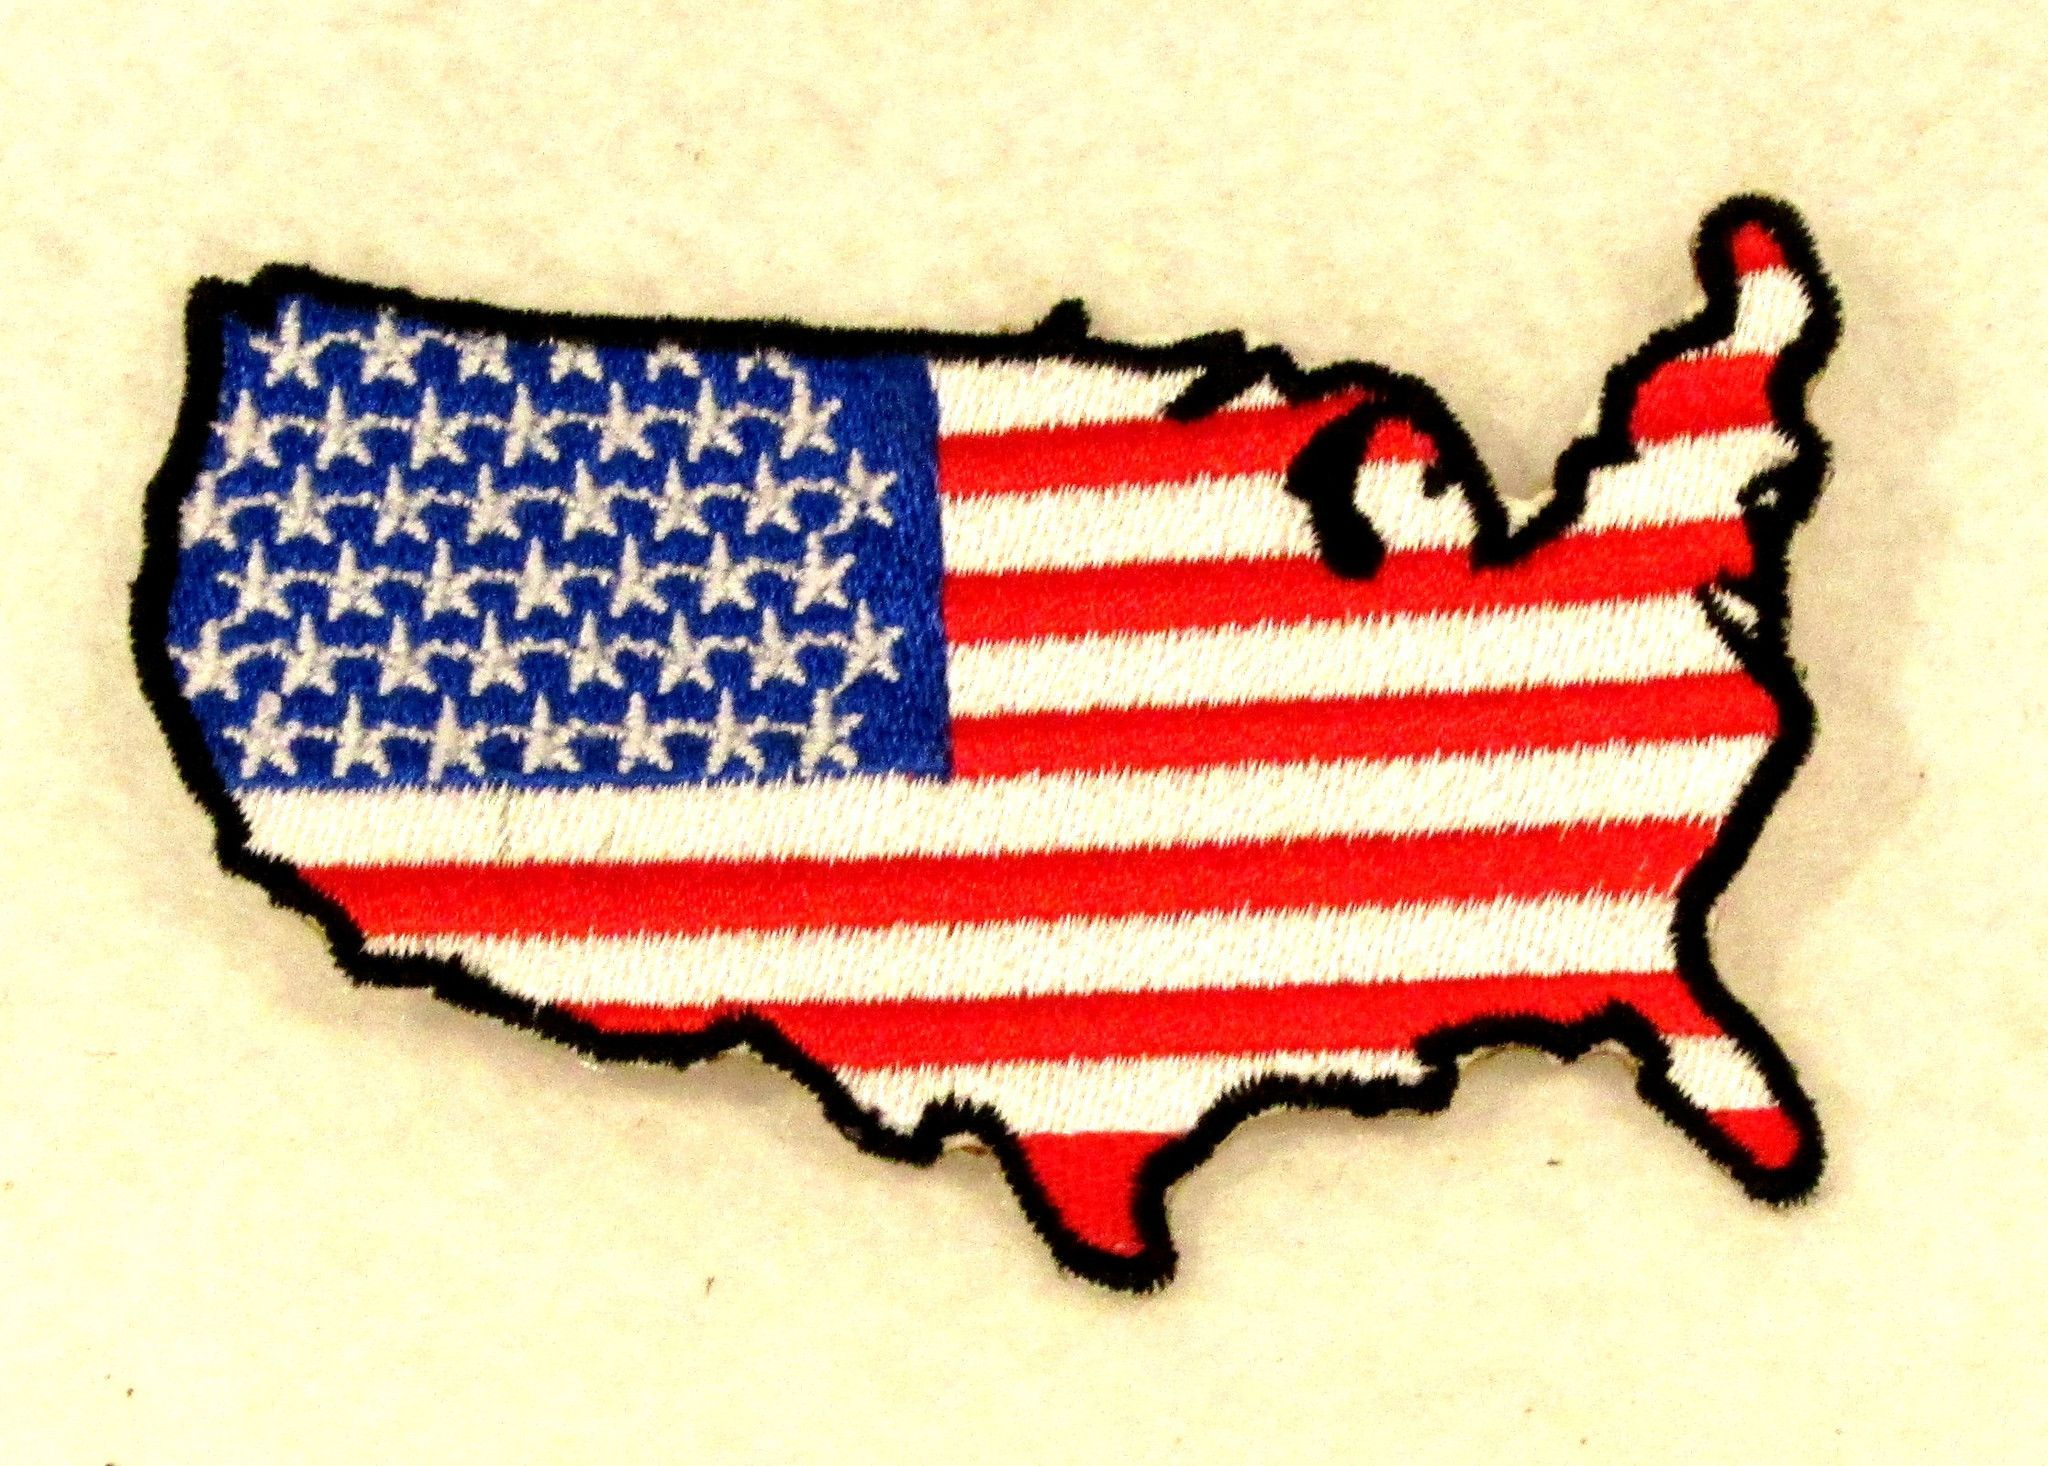 USA Boarder Flag Small Patch Iron on for Biker Vest SB730